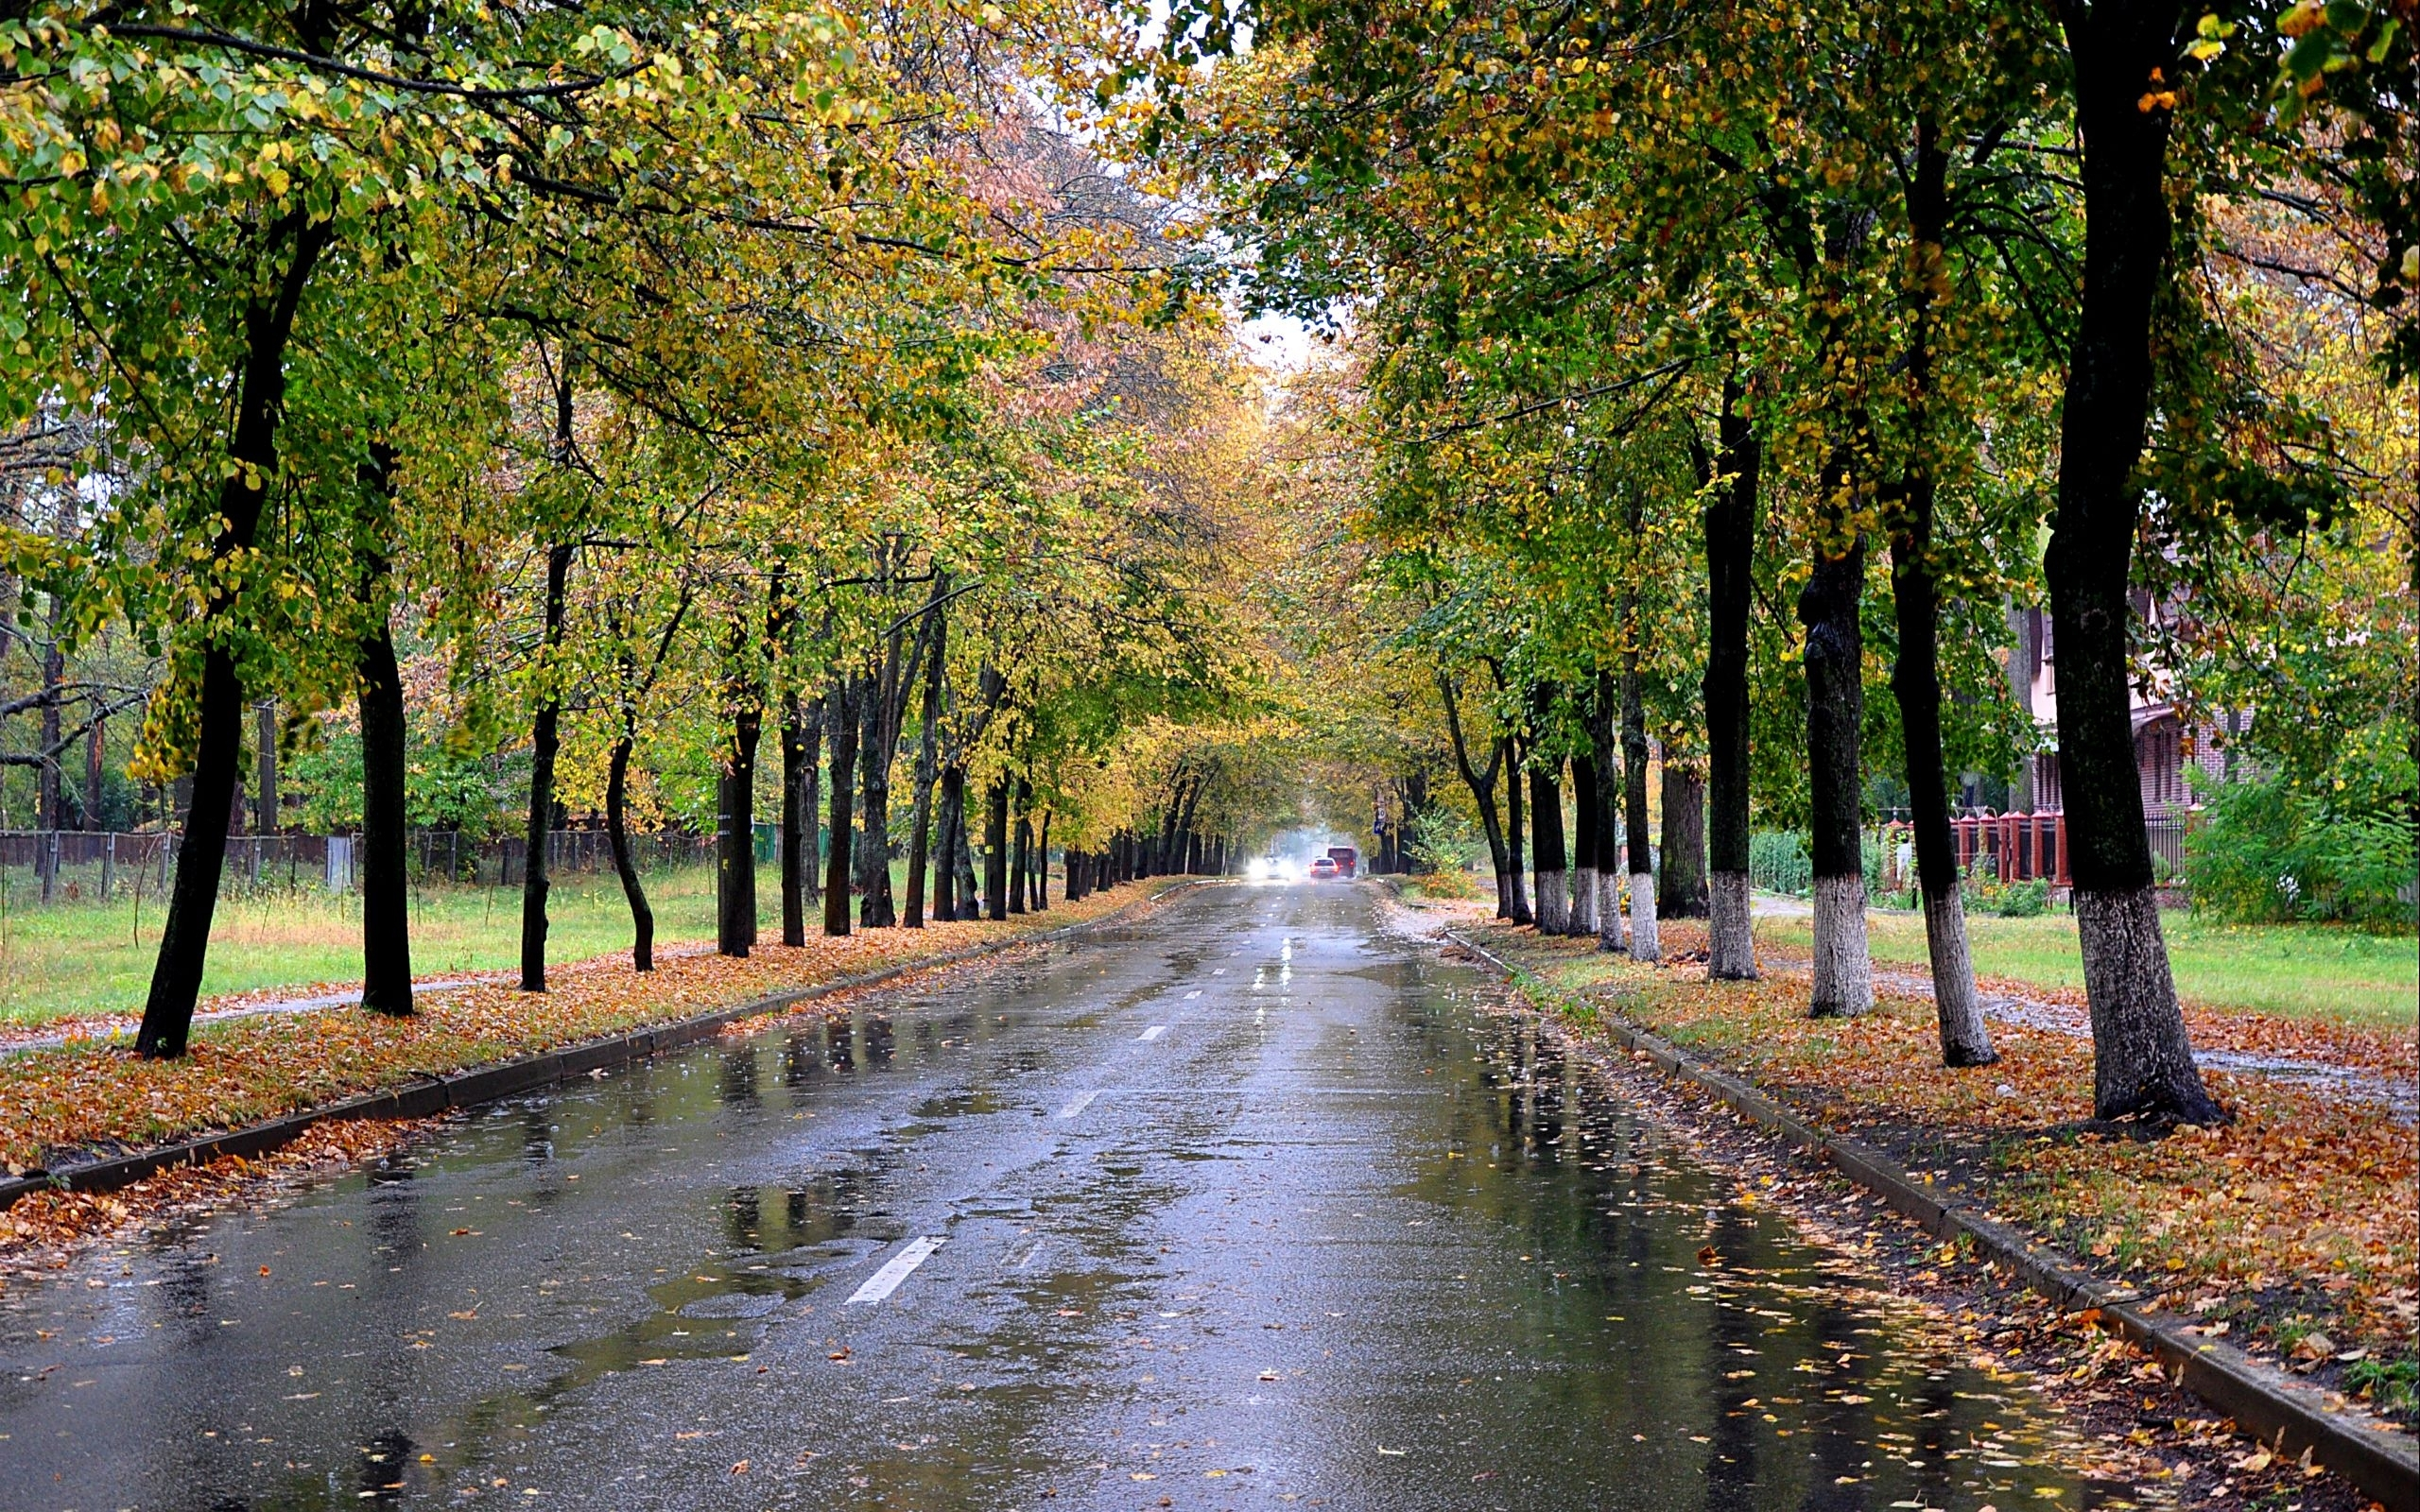 27953 download wallpaper Landscape, Trees, Roads, Autumn screensavers and pictures for free